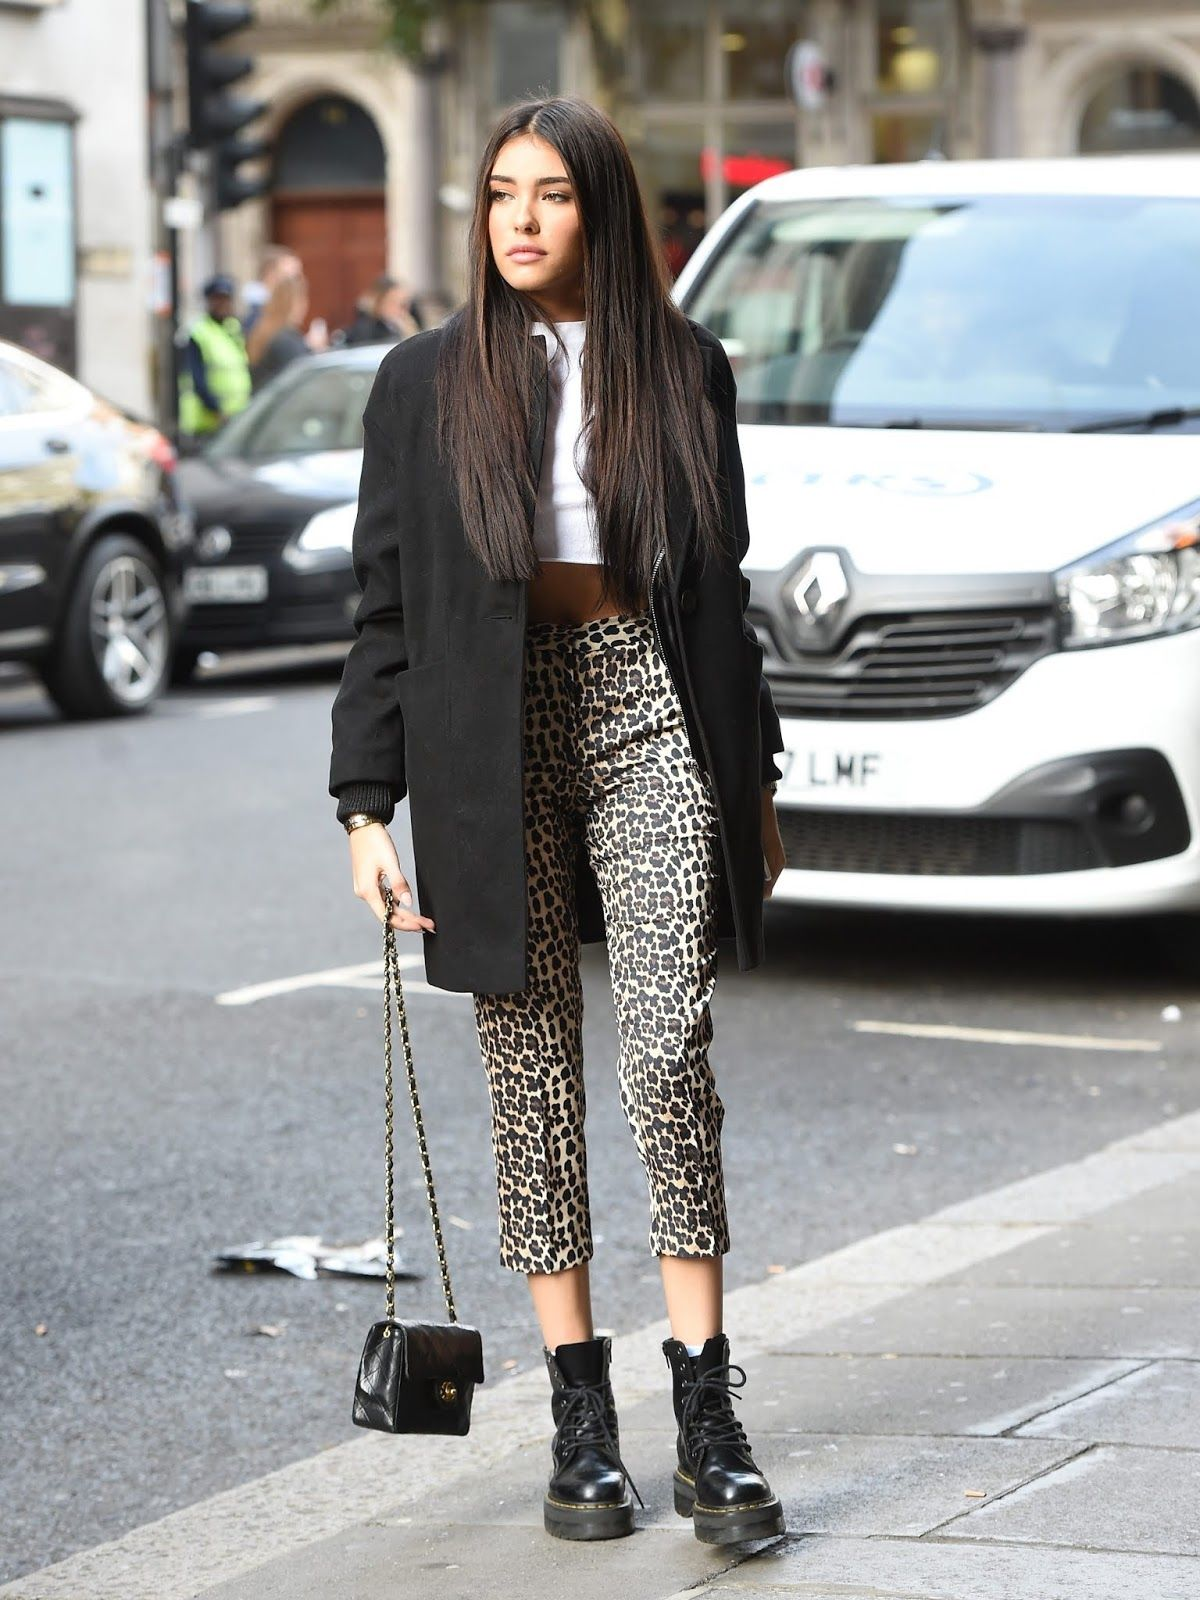 538773f2310d Madison Beer leaving the VEVO offices in London - 23 Oct 2018 – Celeb  Central